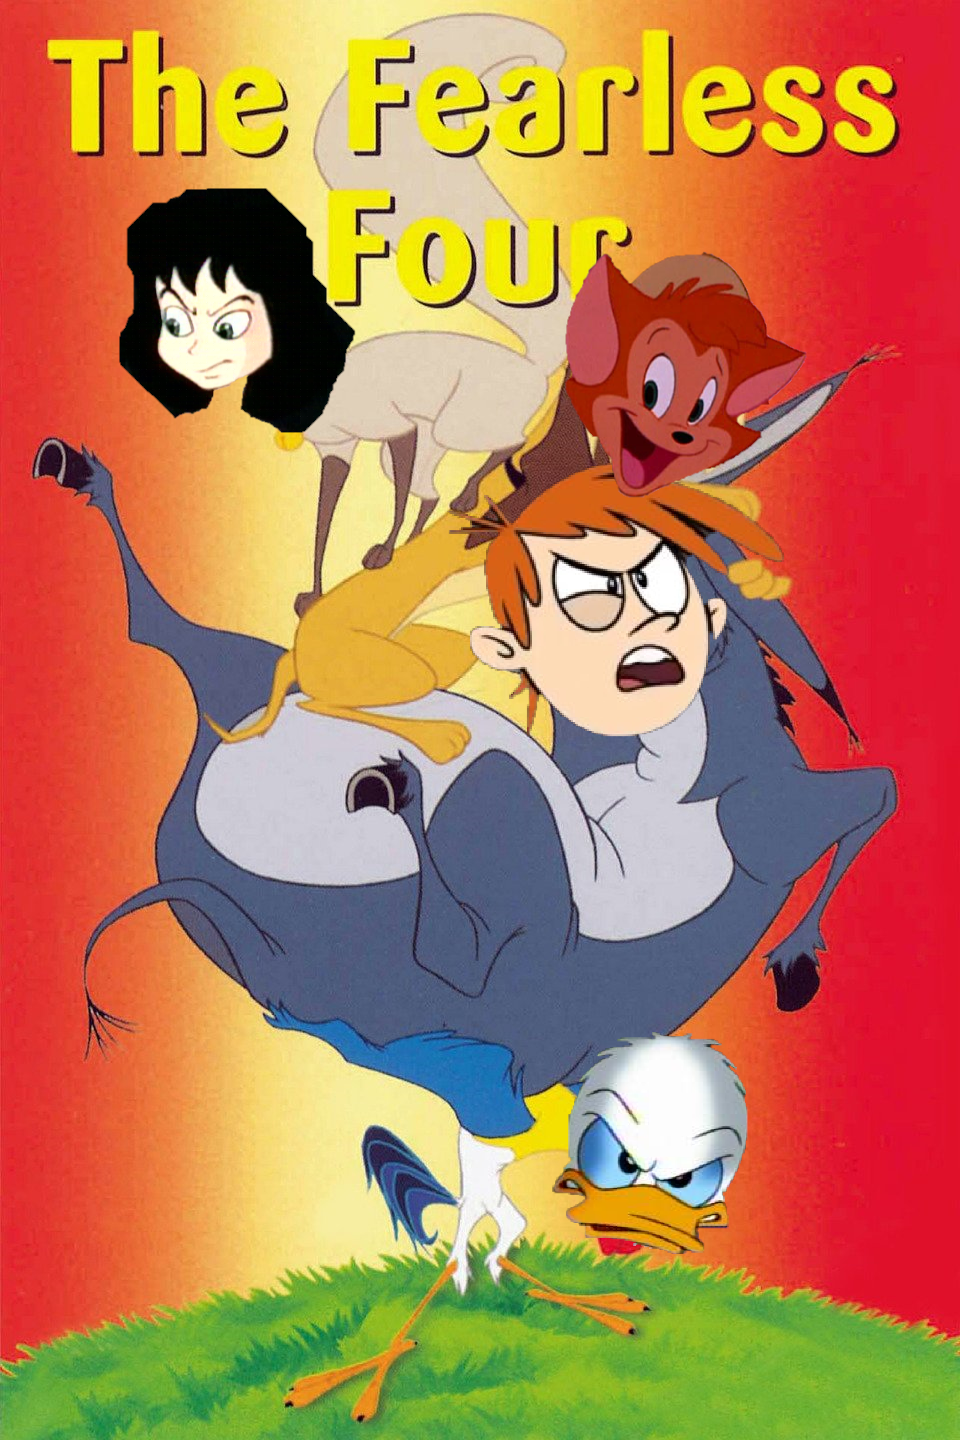 The Fearless Four